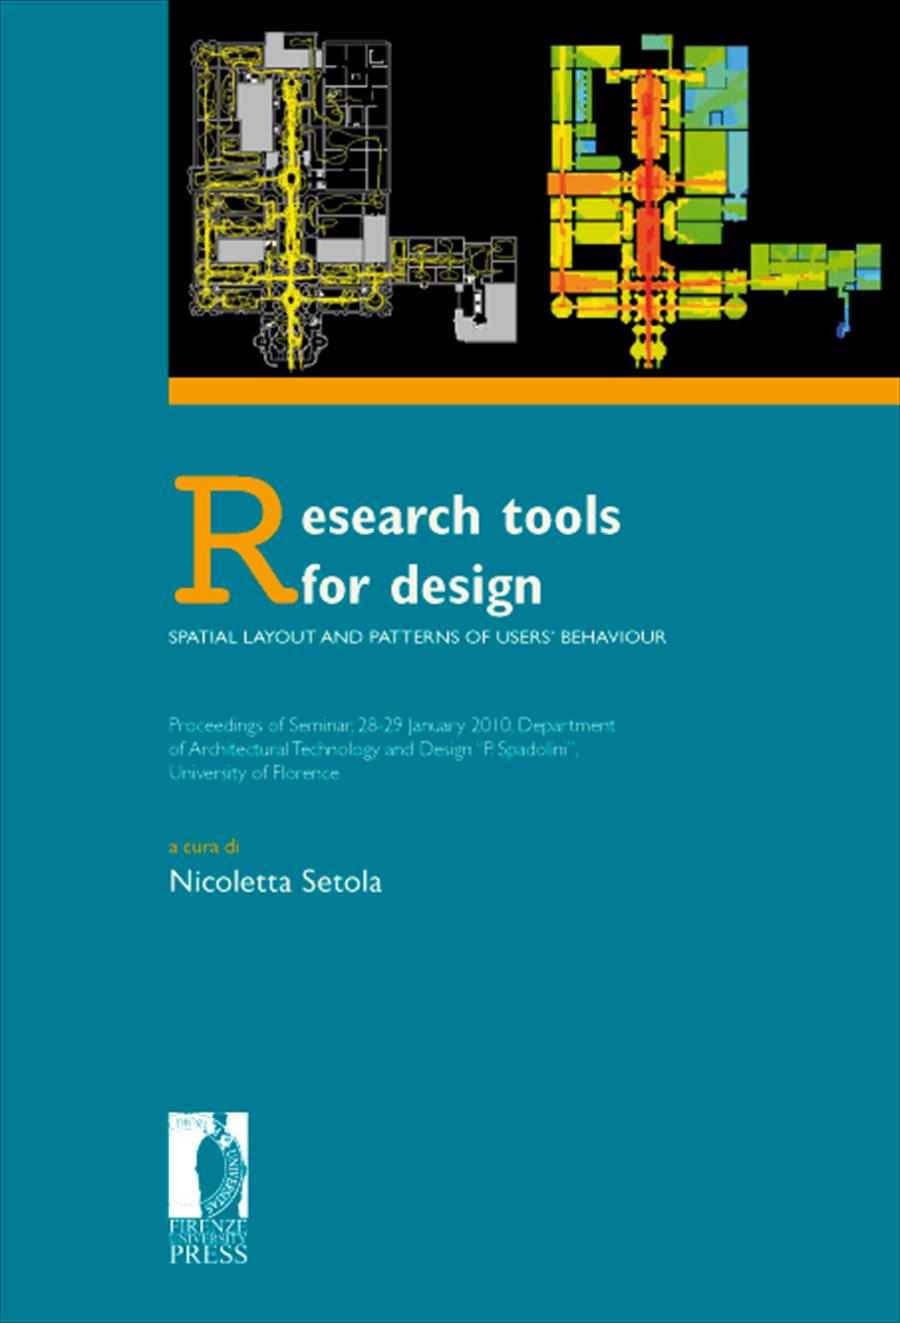 Research tools for design. Spatial layout and patterns of users' behaviour